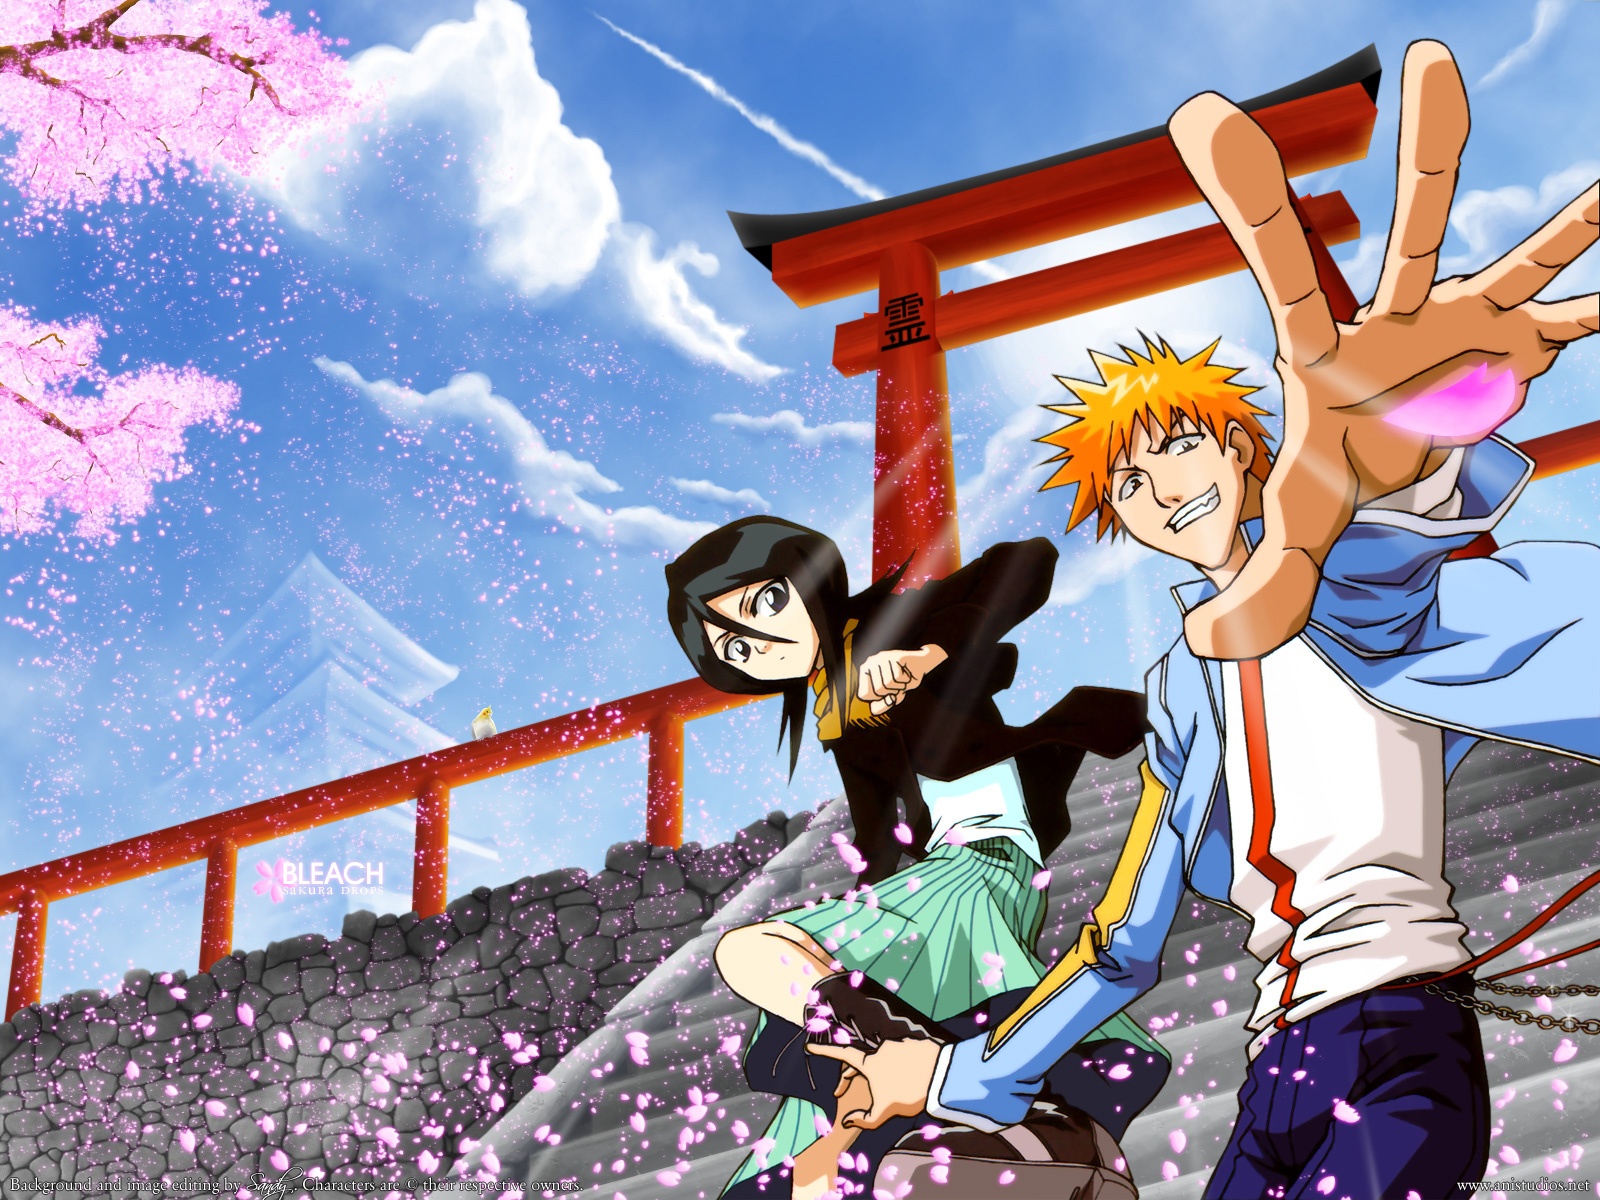 animal bird black_hair bleach boots brown_eyes chain cherry_blossoms clouds flowers jpeg_artifacts kuchiki_rukia kurosaki_ichigo male orange_hair petals purple_eyes scarf short_hair skirt sky stairs torii tree watermark